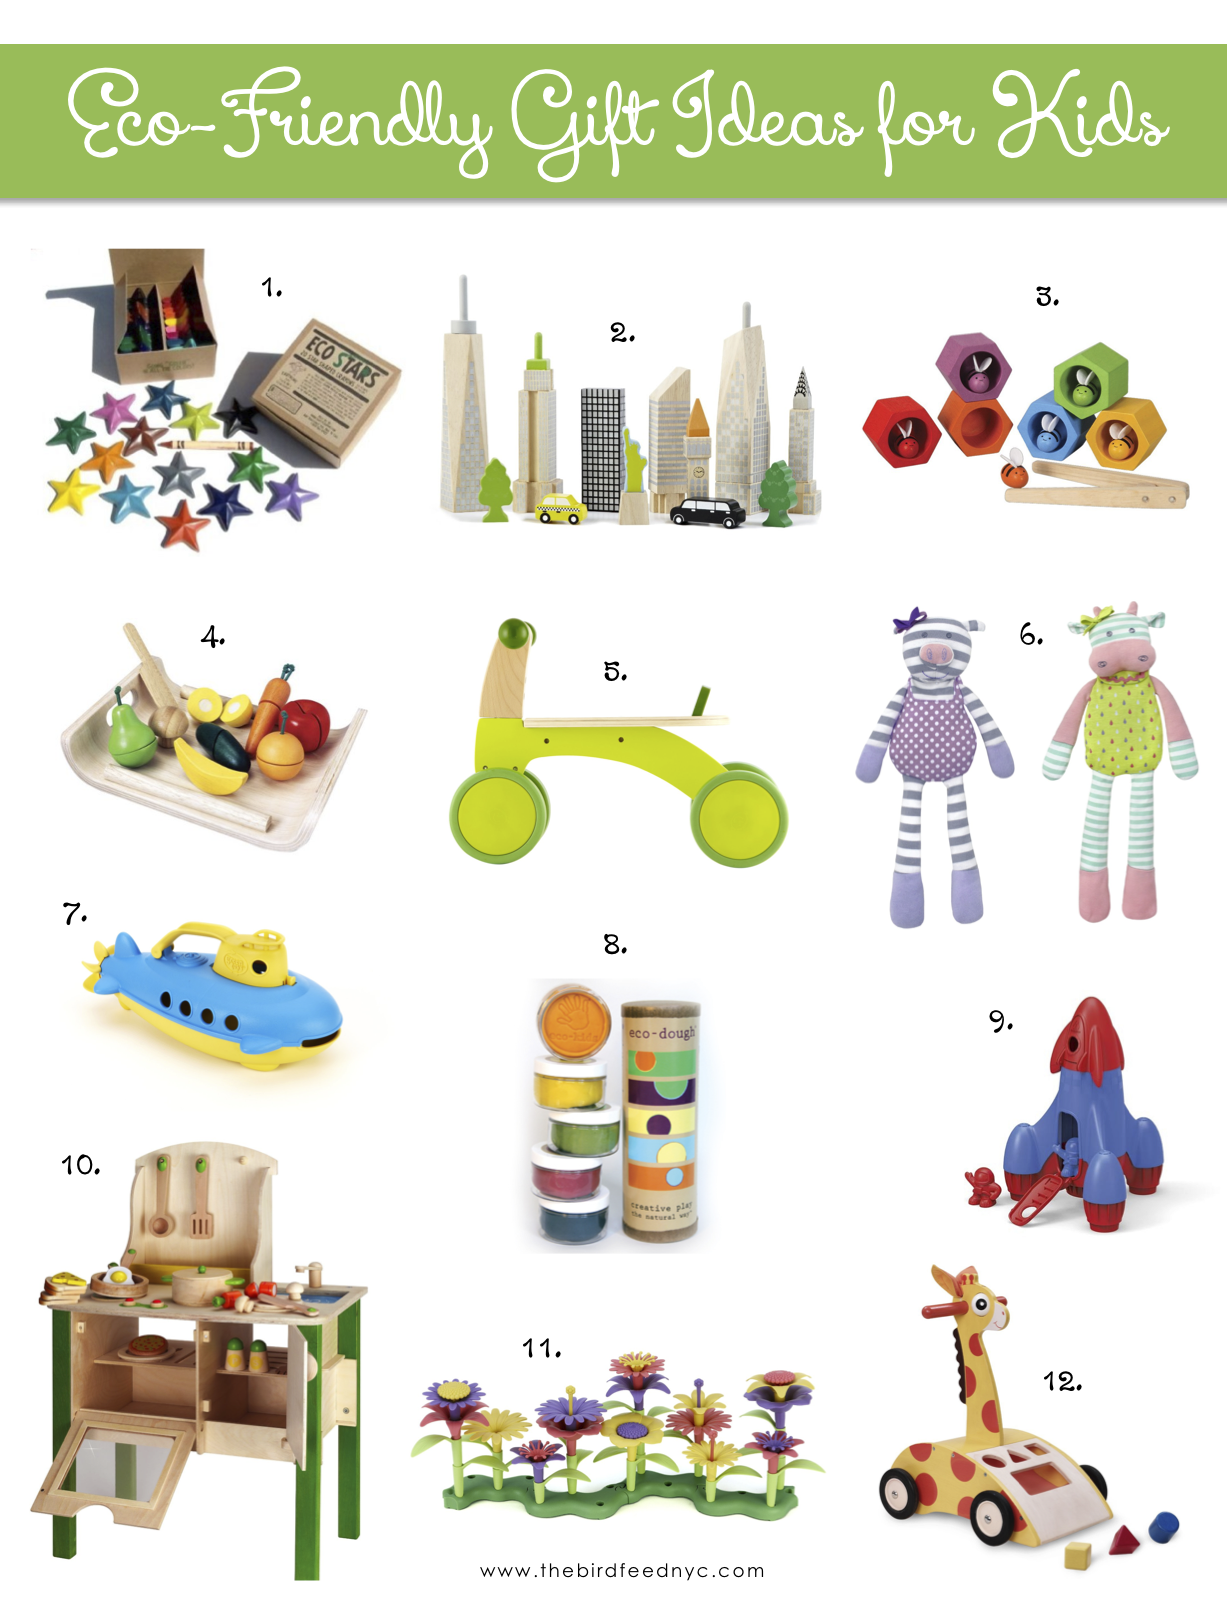 12 Eco Friendly Gift Ideas for Kids